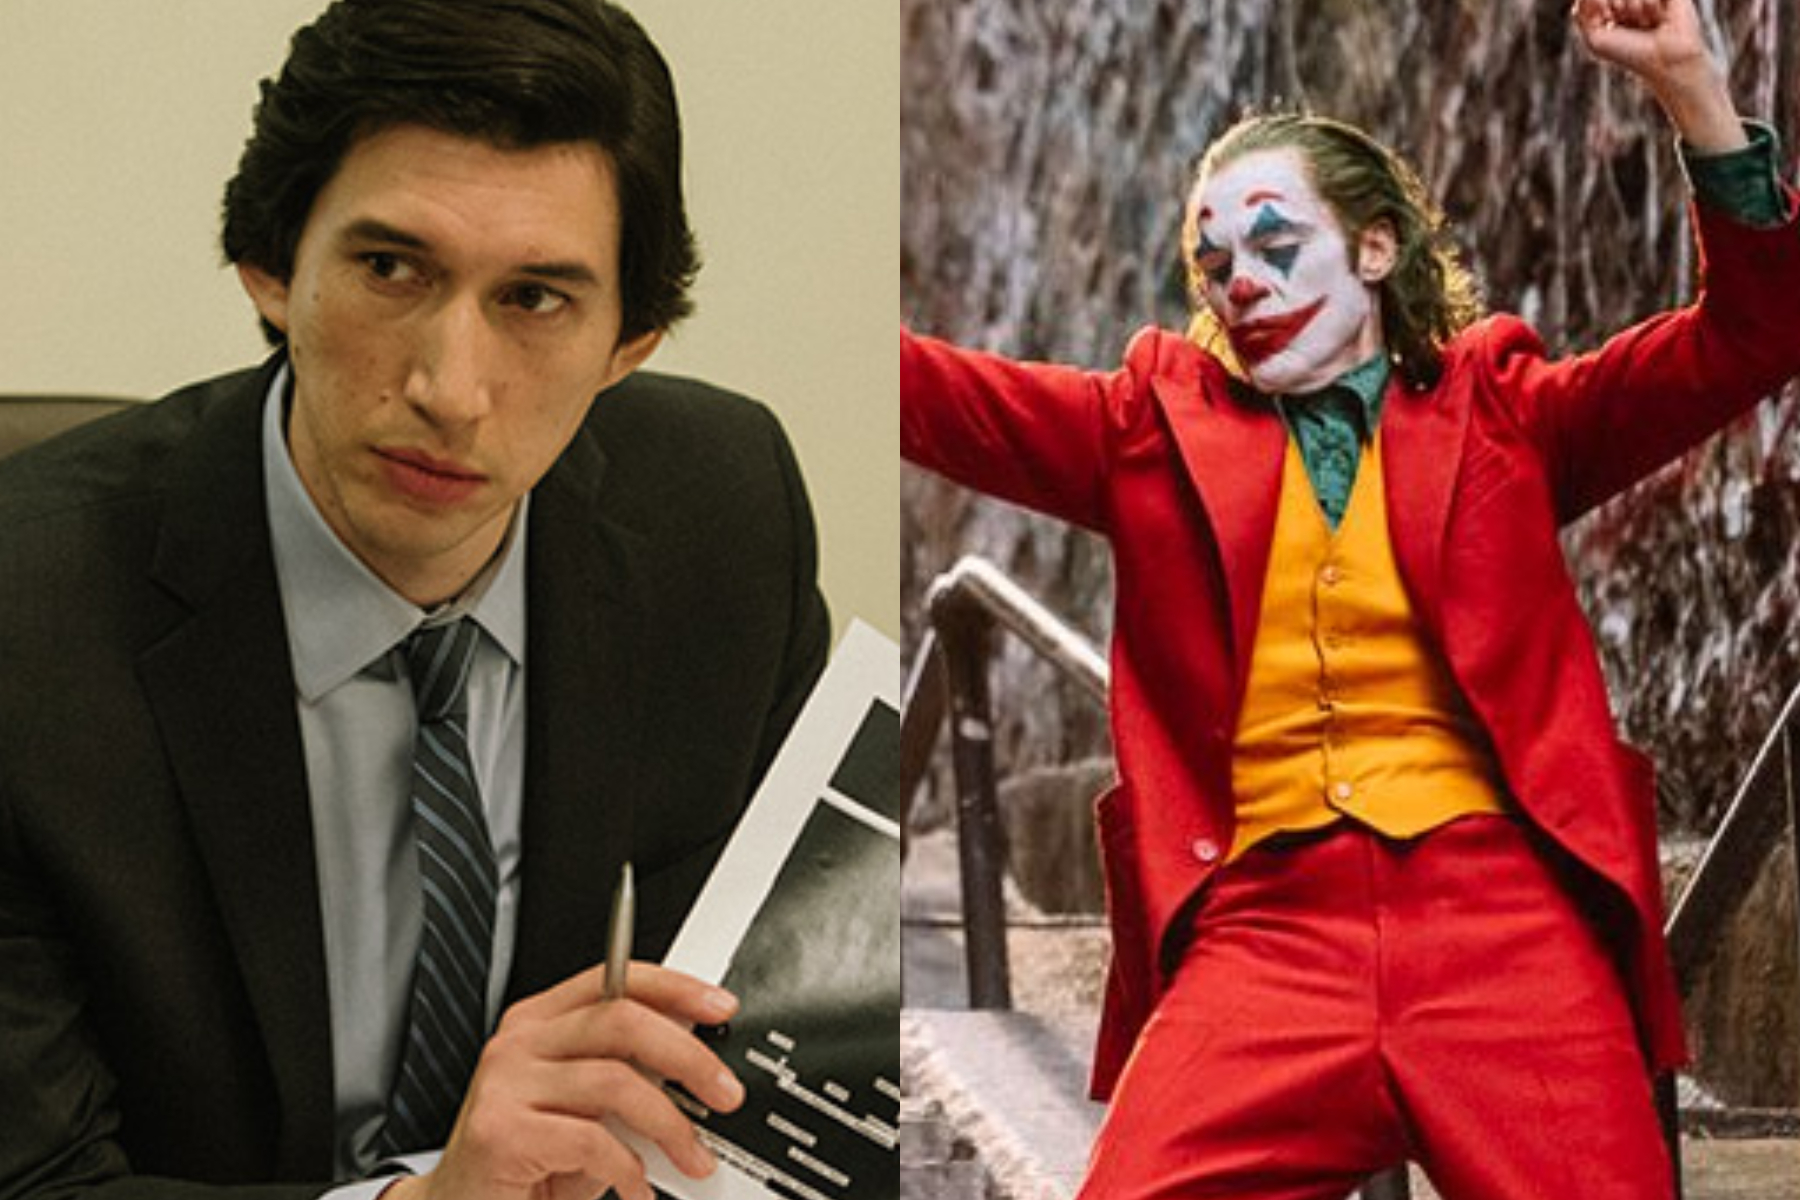 Adam Driver in The Report and Joaquin Phoenix in Joker.